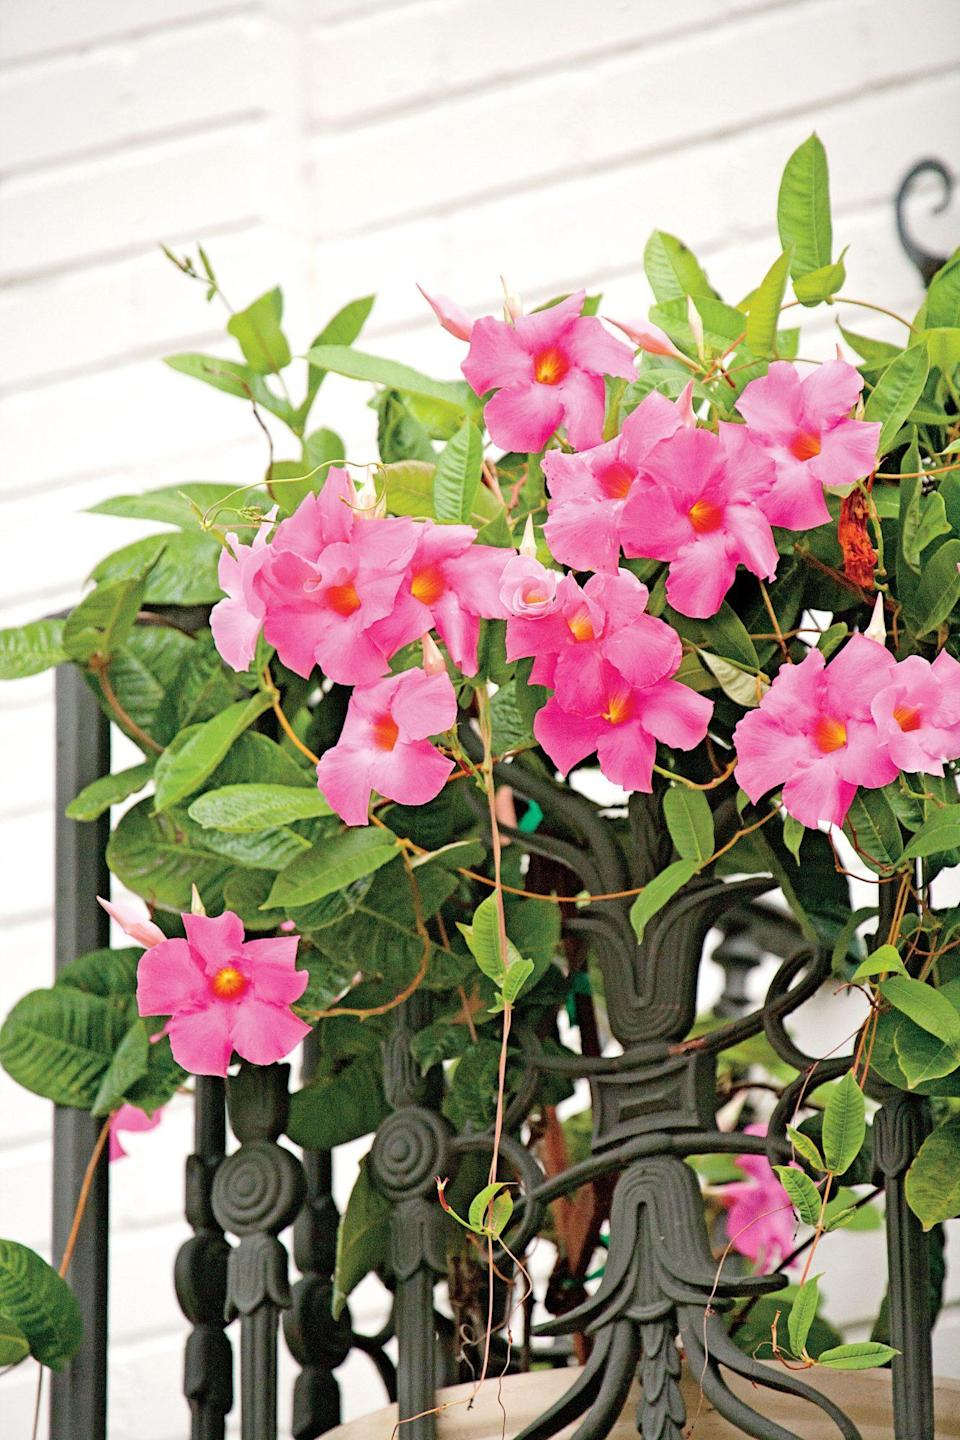 """<p>Let <a href=""""https://www.southernliving.com/home-garden/gardens/mighty-fine-vine-mandevilla"""" rel=""""nofollow noopener"""" target=""""_blank"""" data-ylk=""""slk:Mandevilla get its footing in the spring"""" class=""""link rapid-noclick-resp"""">Mandevilla get its footing in the spring</a> and then watch this climber erupt in blooms until frost. They thrive in the warm and humid Coastal and Tropical South, but they can be brought inside during the winter months or given an annual role elsewhere. They should avoid peak afternoon sun, but otherwise can hang in full or partial sun. They also make an excellent cover for trellises and fences.</p>"""